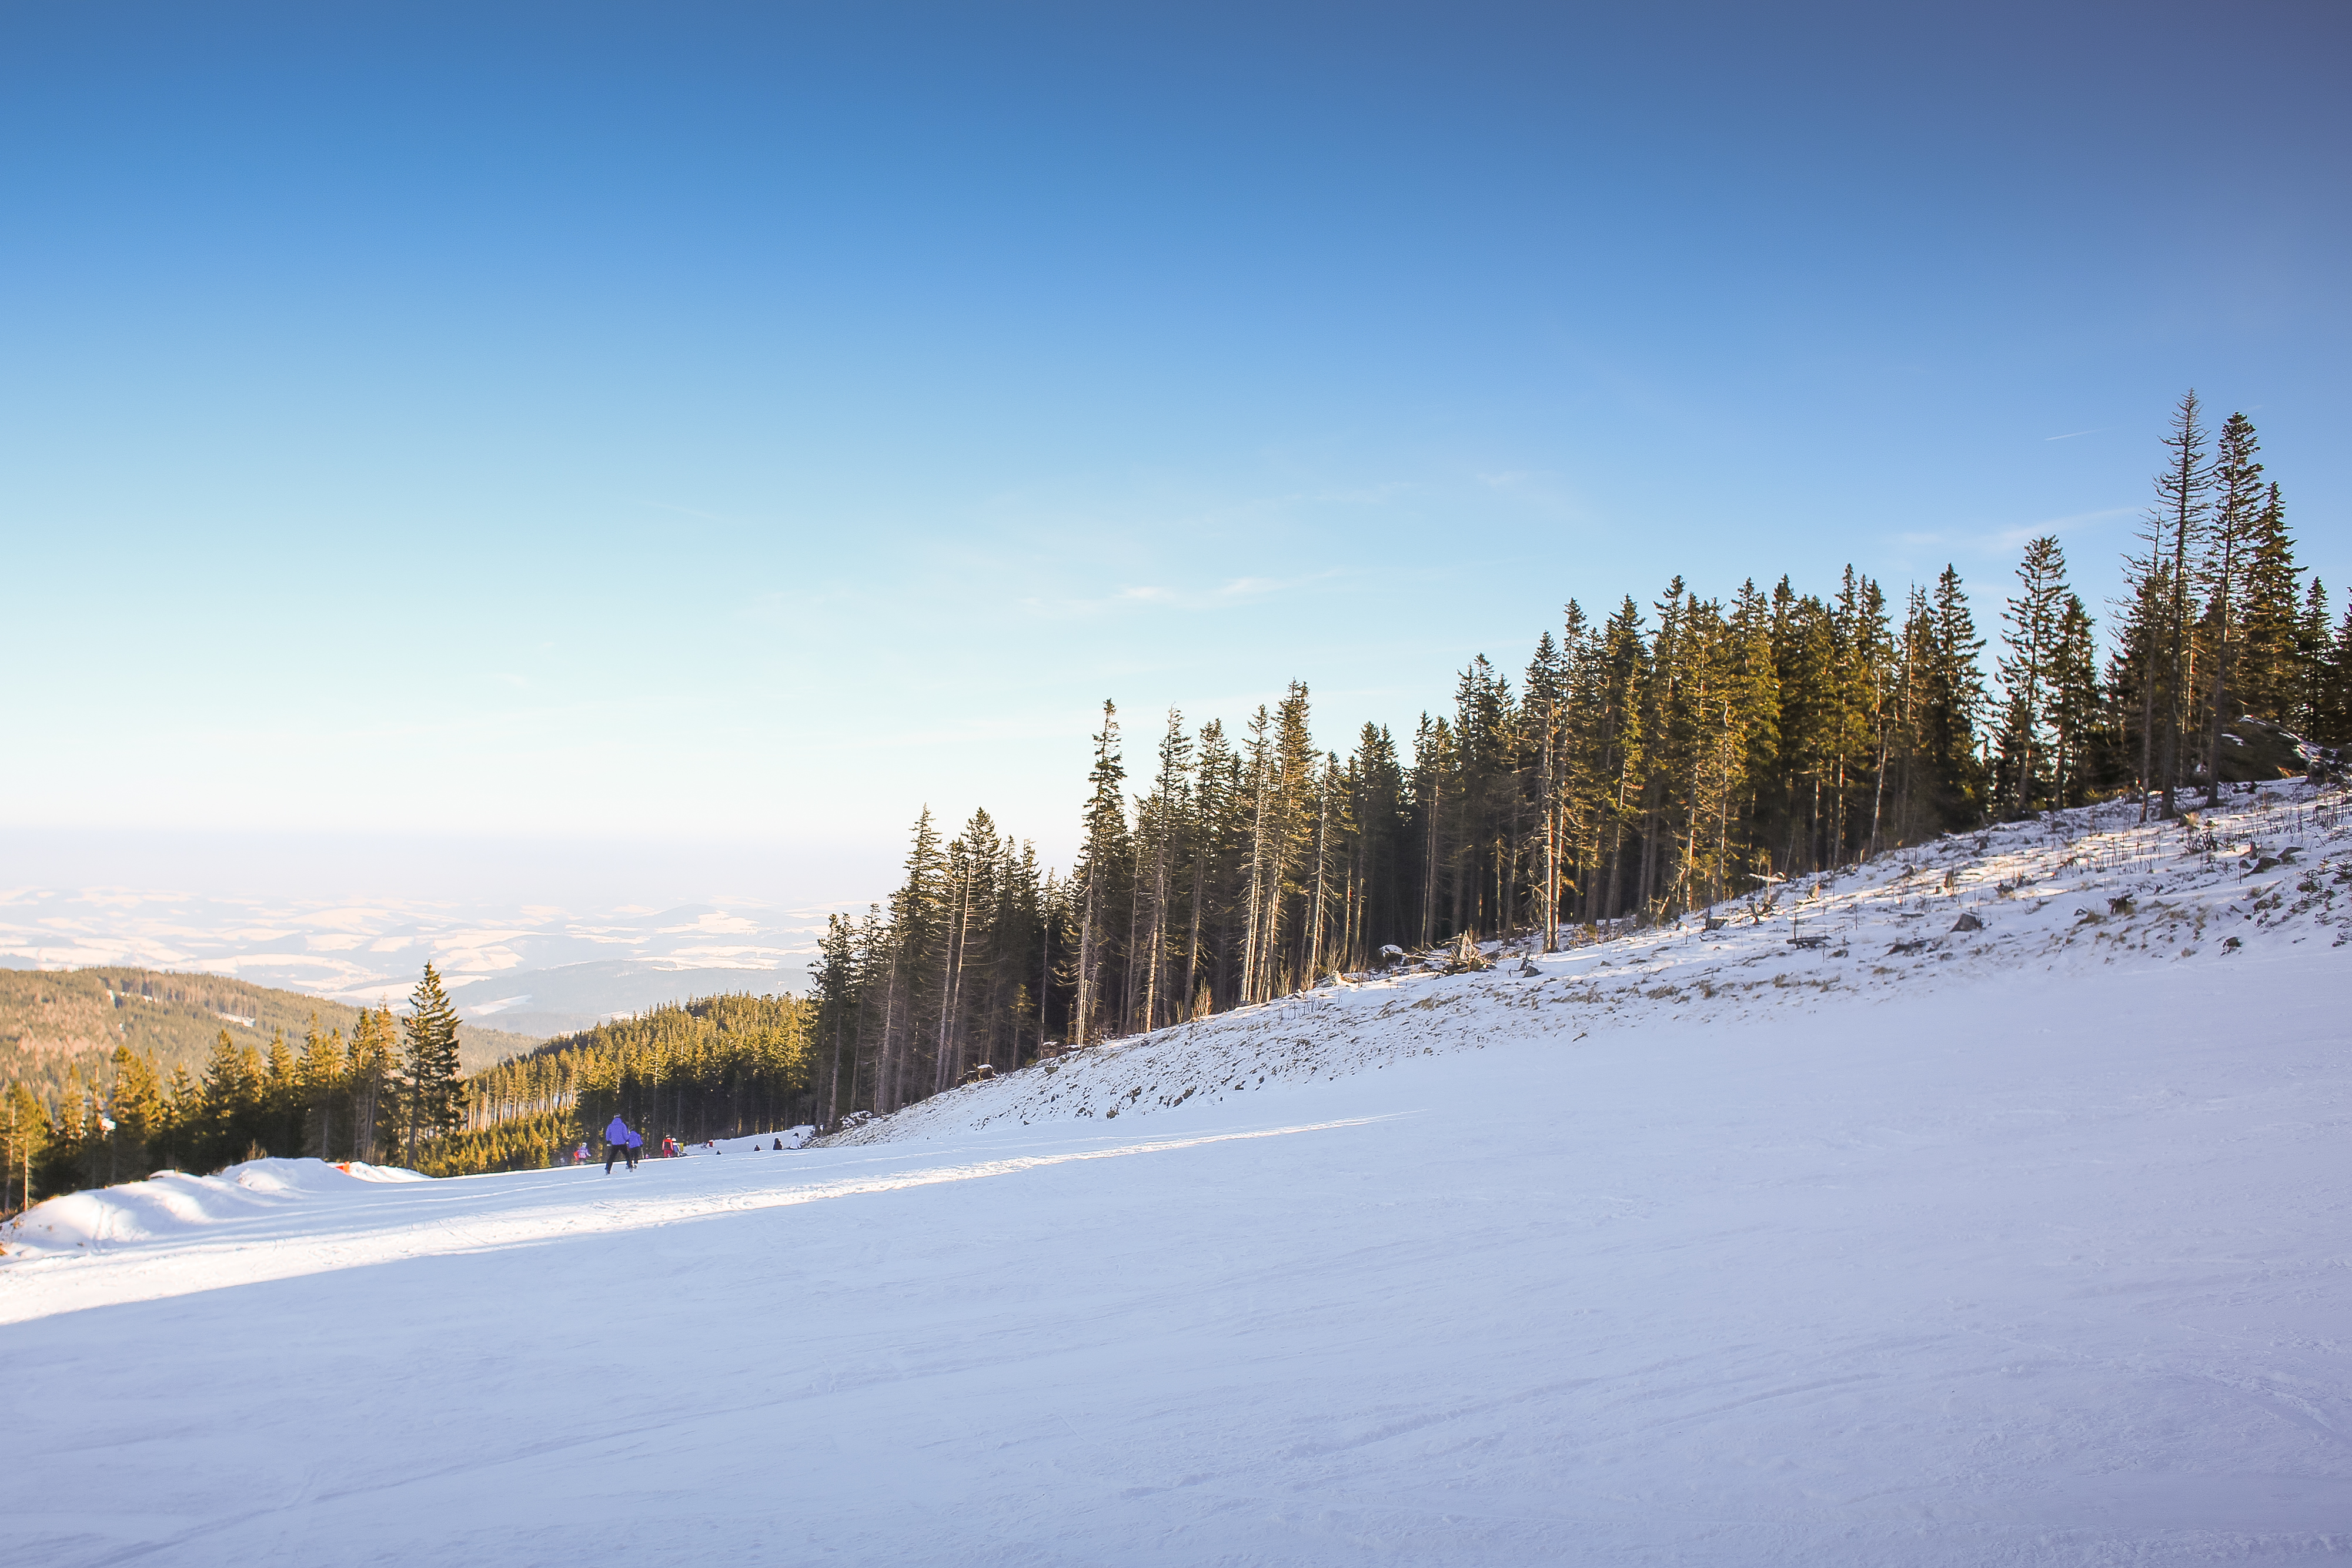 Download Ski Slope with Blue Sky FREE Stock Photo